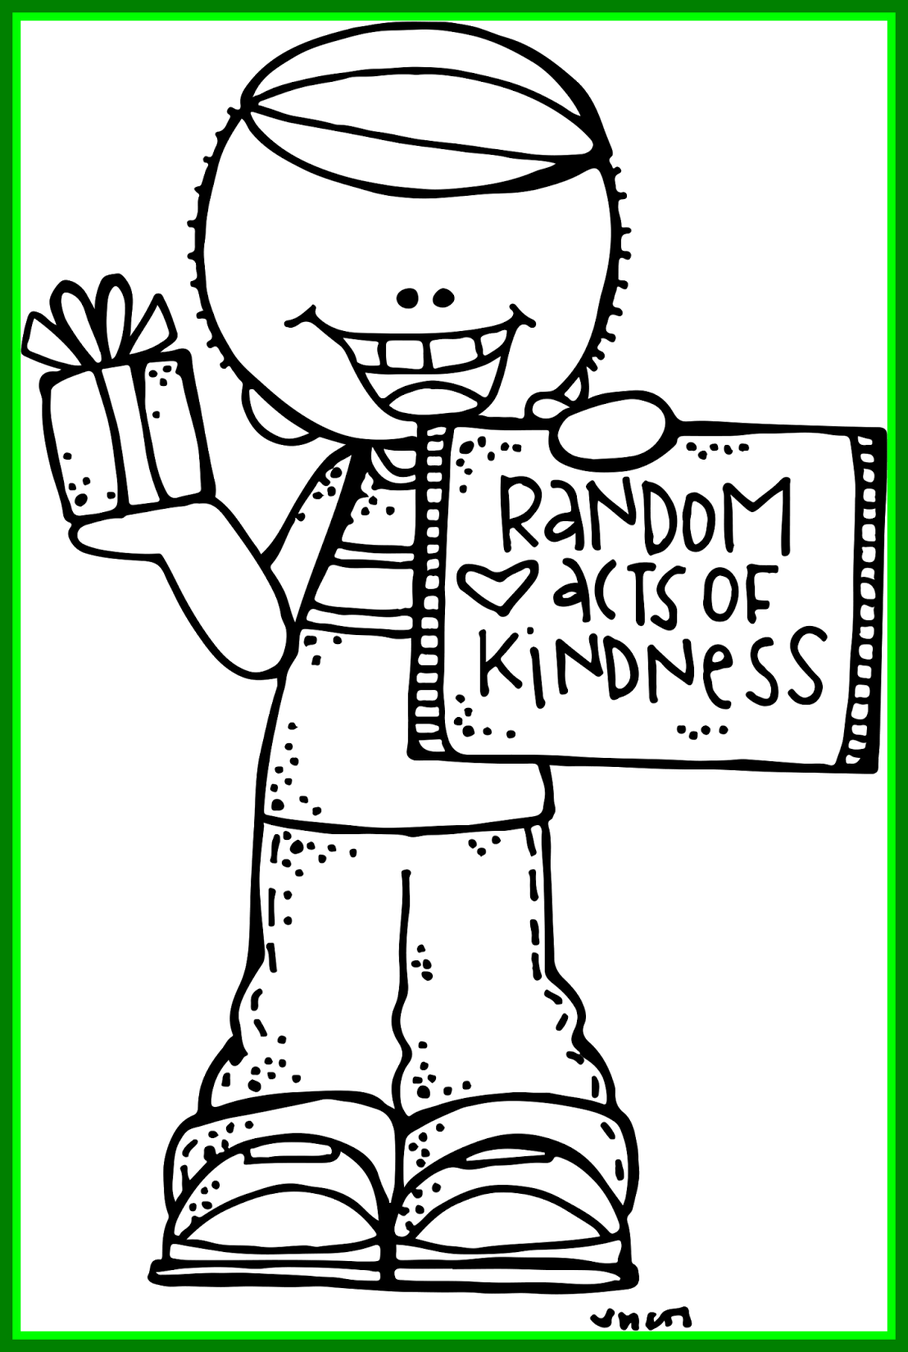 Stunning one little tiny. Human clipart kindness